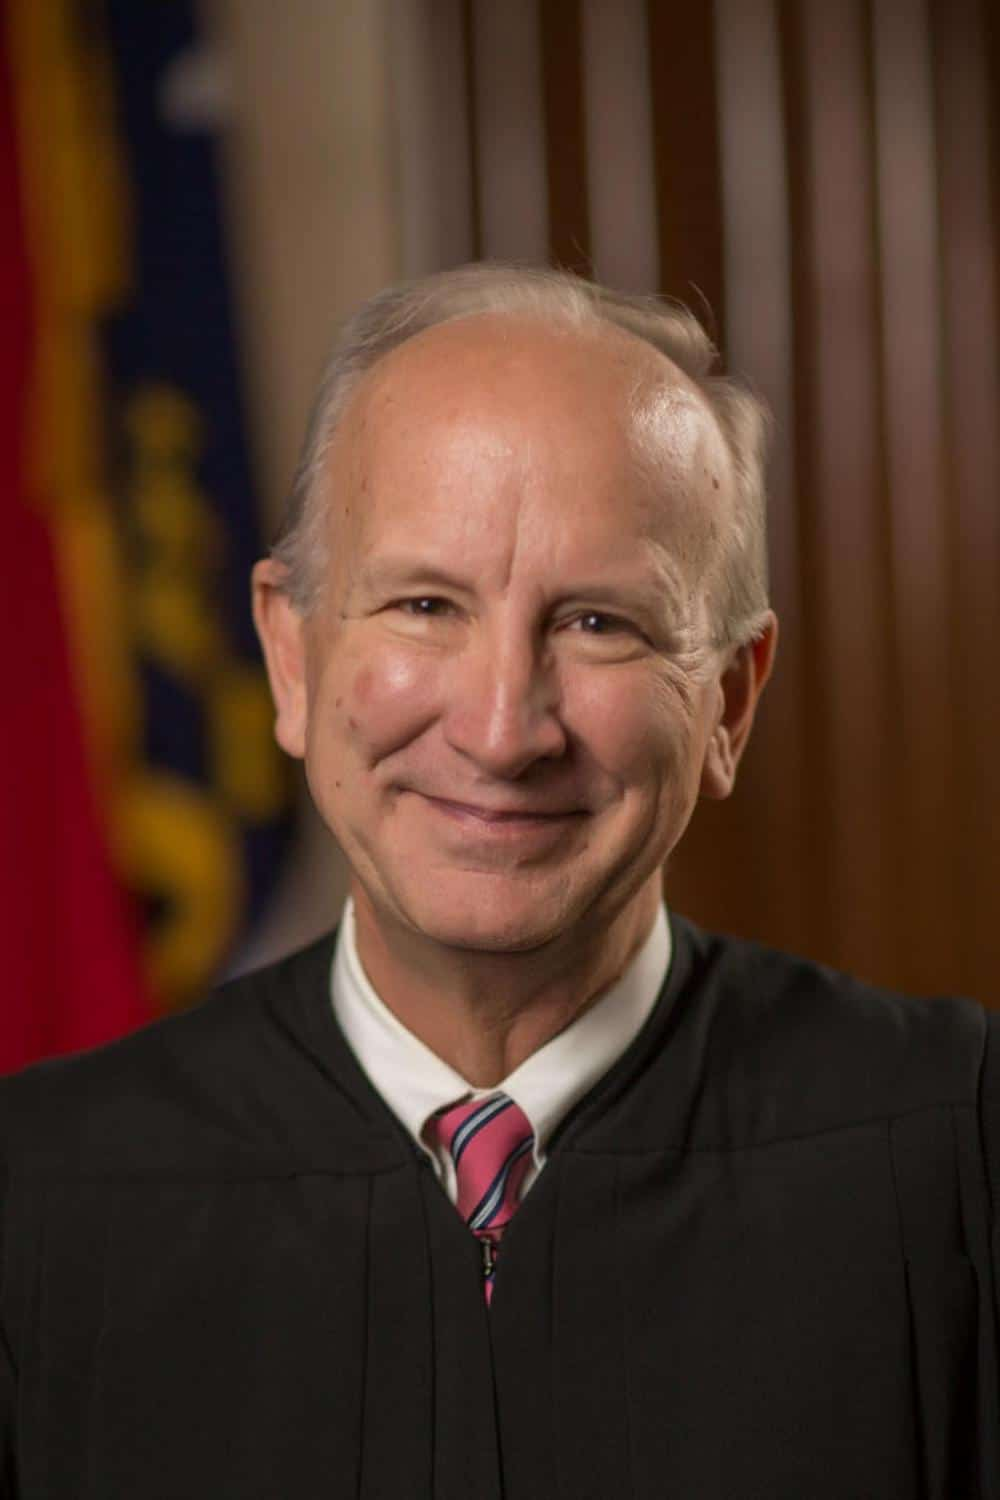 Chief Justice Paul Newby Issues Emergency Directives on COVID-19